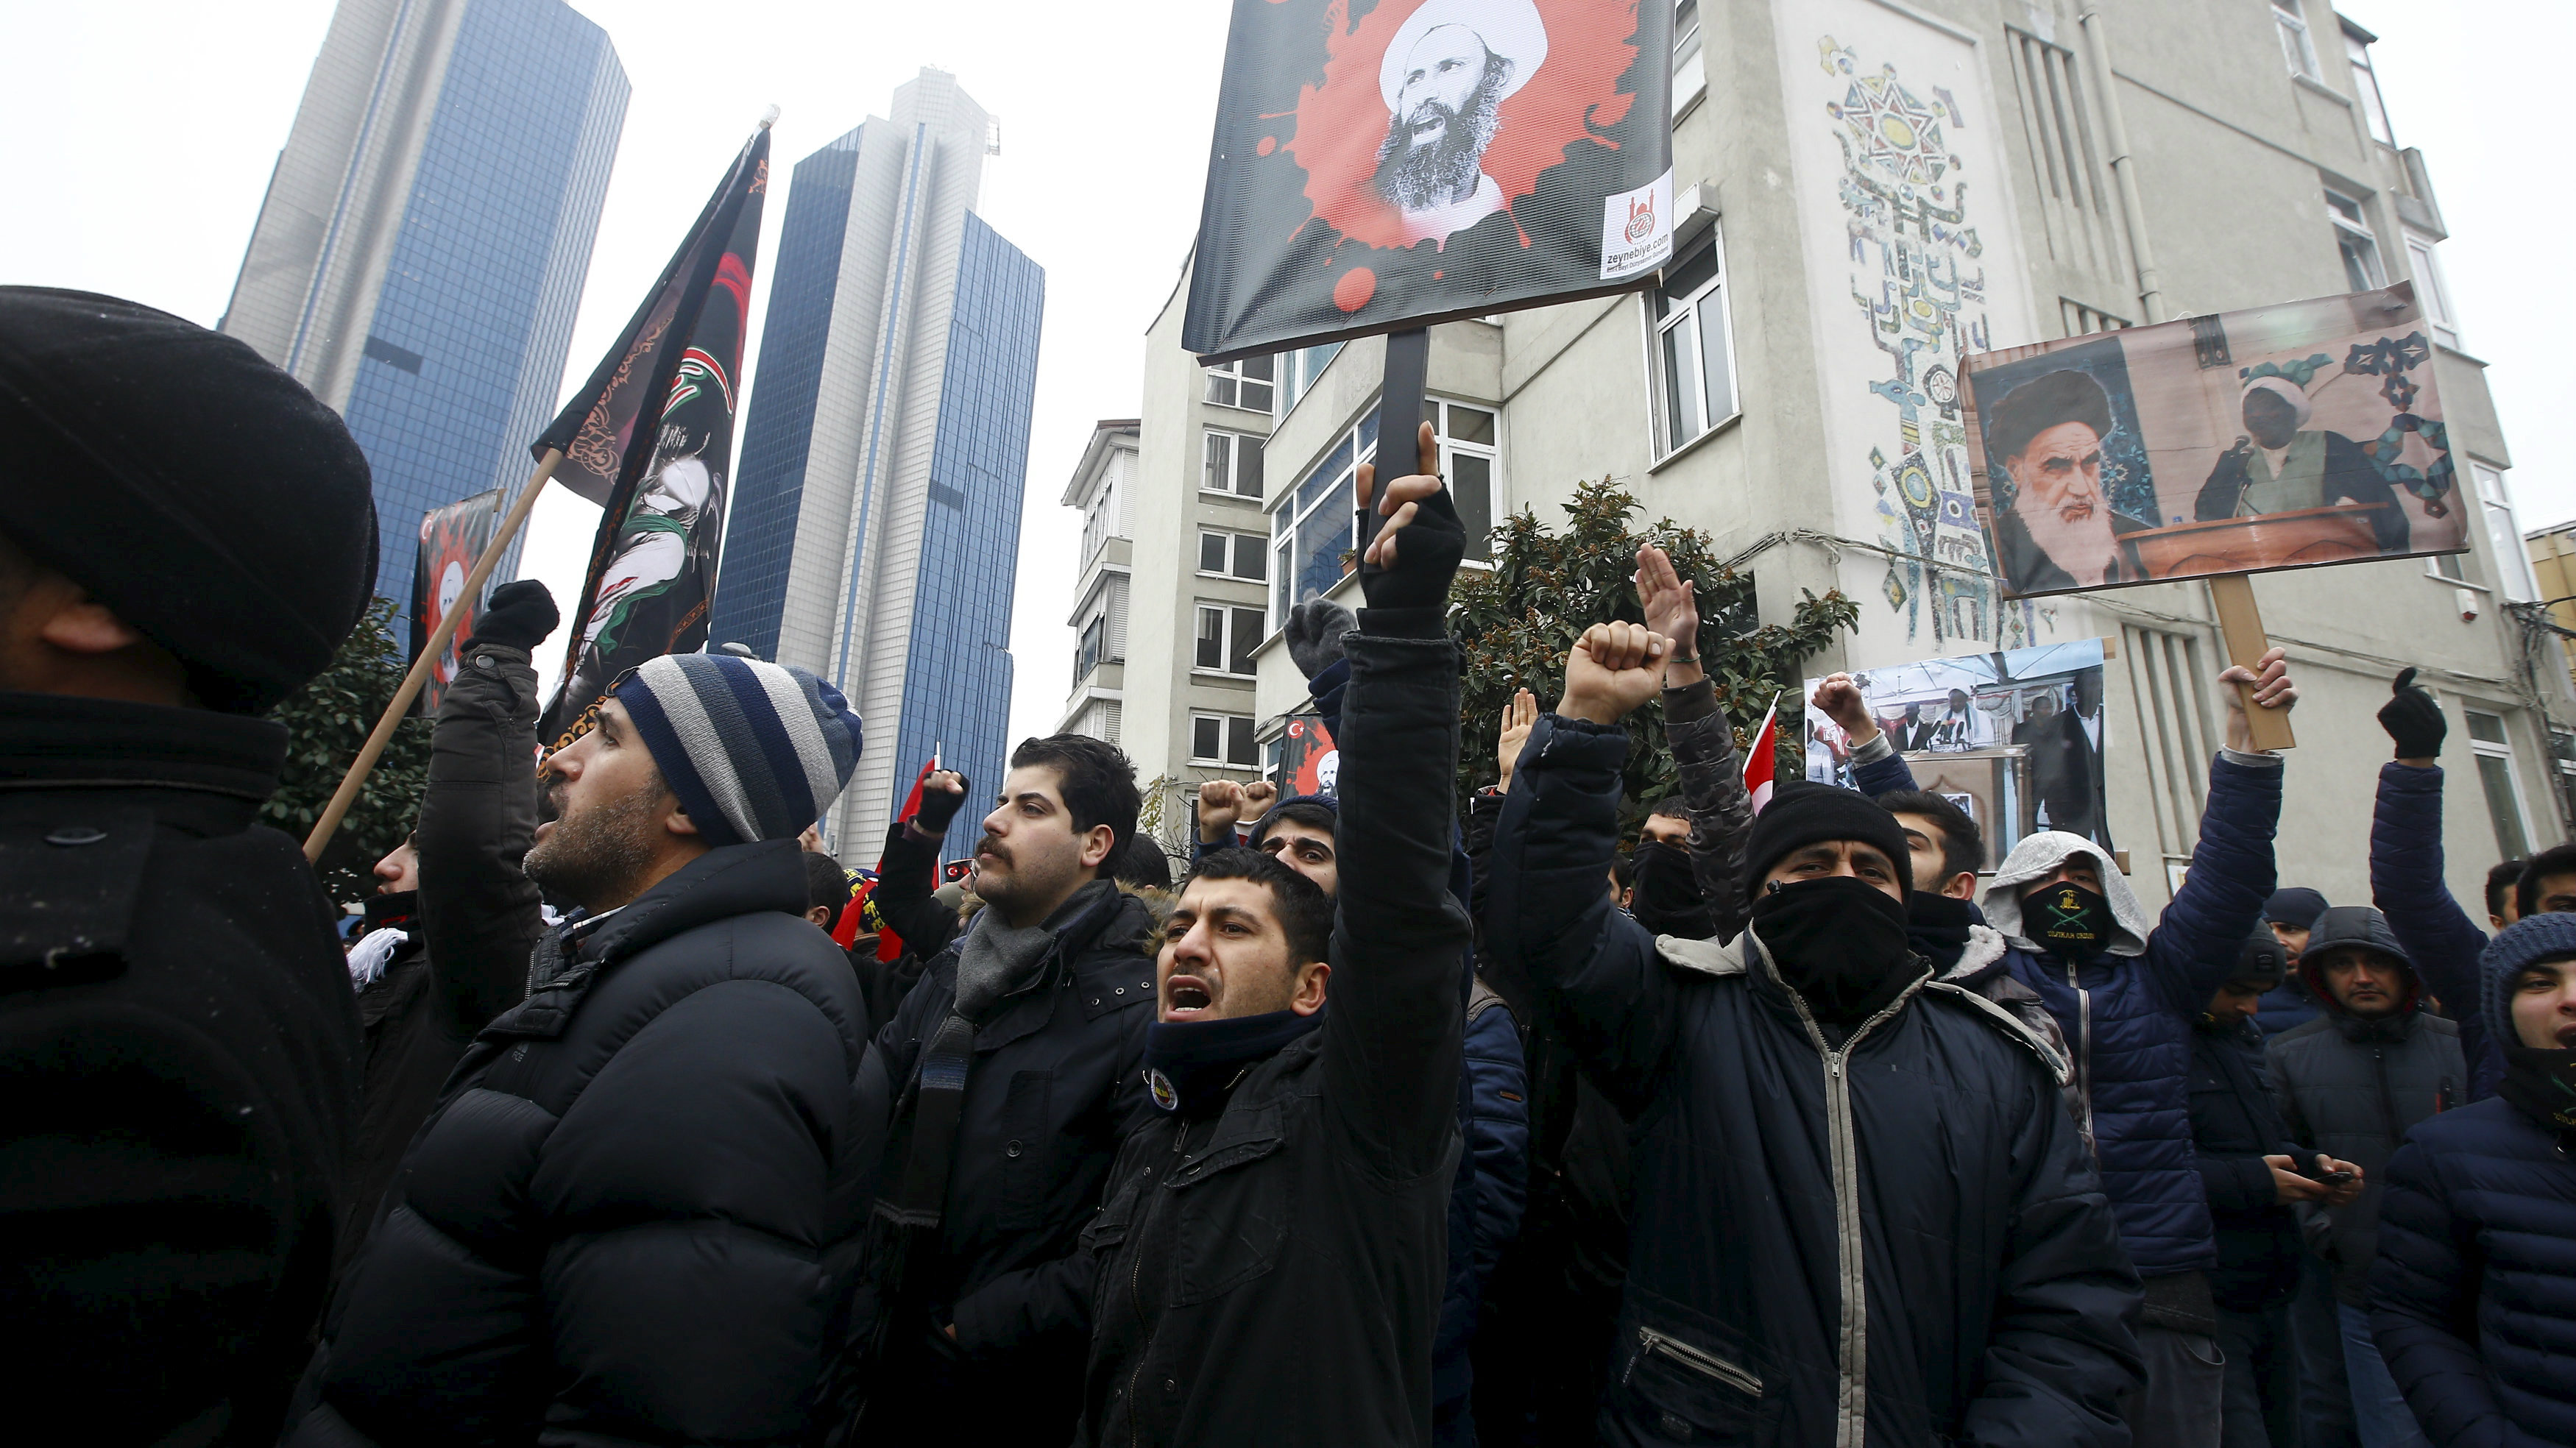 Shi'ite protesters carry posters of Sheikh Nimr al-Nimr during a demonstration in front of Saudi Arabia's Consulate in Istanbul, Turkey, January 3, 2016.